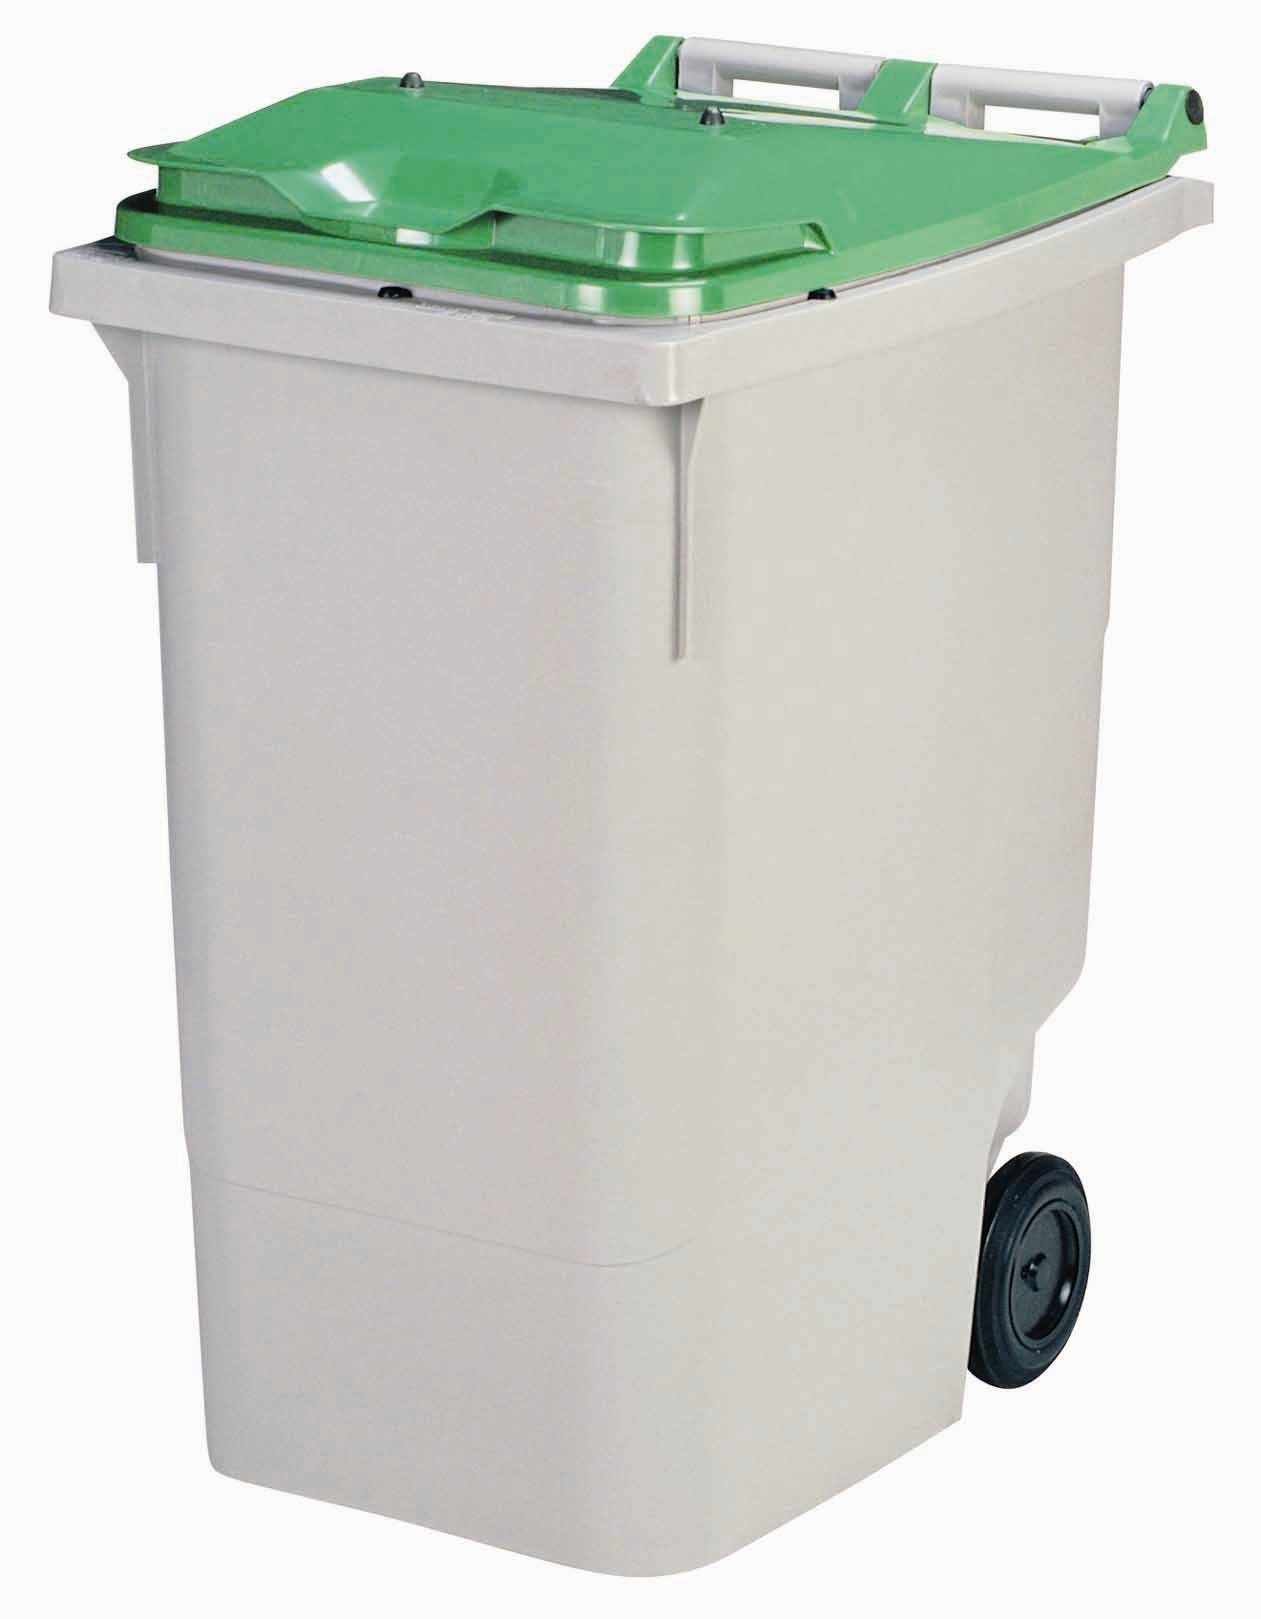 2 Wheel Waste Container 340 Liters Green Lid Front Stacker